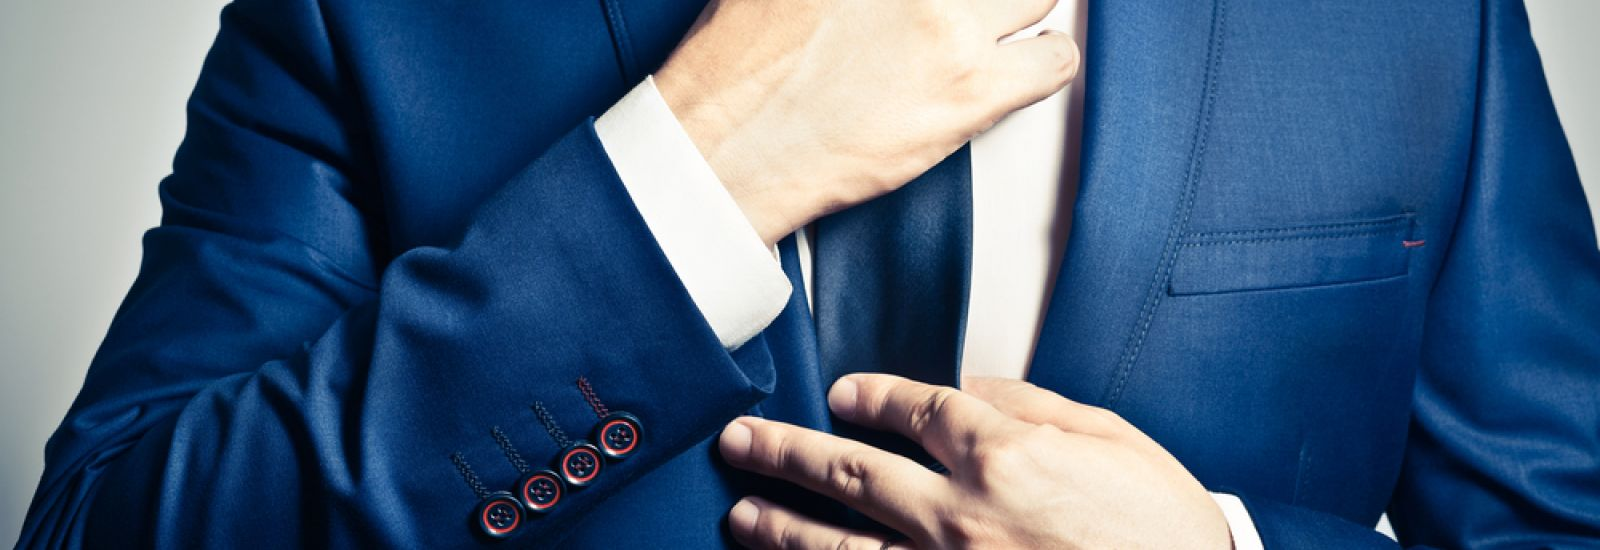 Businessman in blue suit tying the necktie: a ritual of sorts